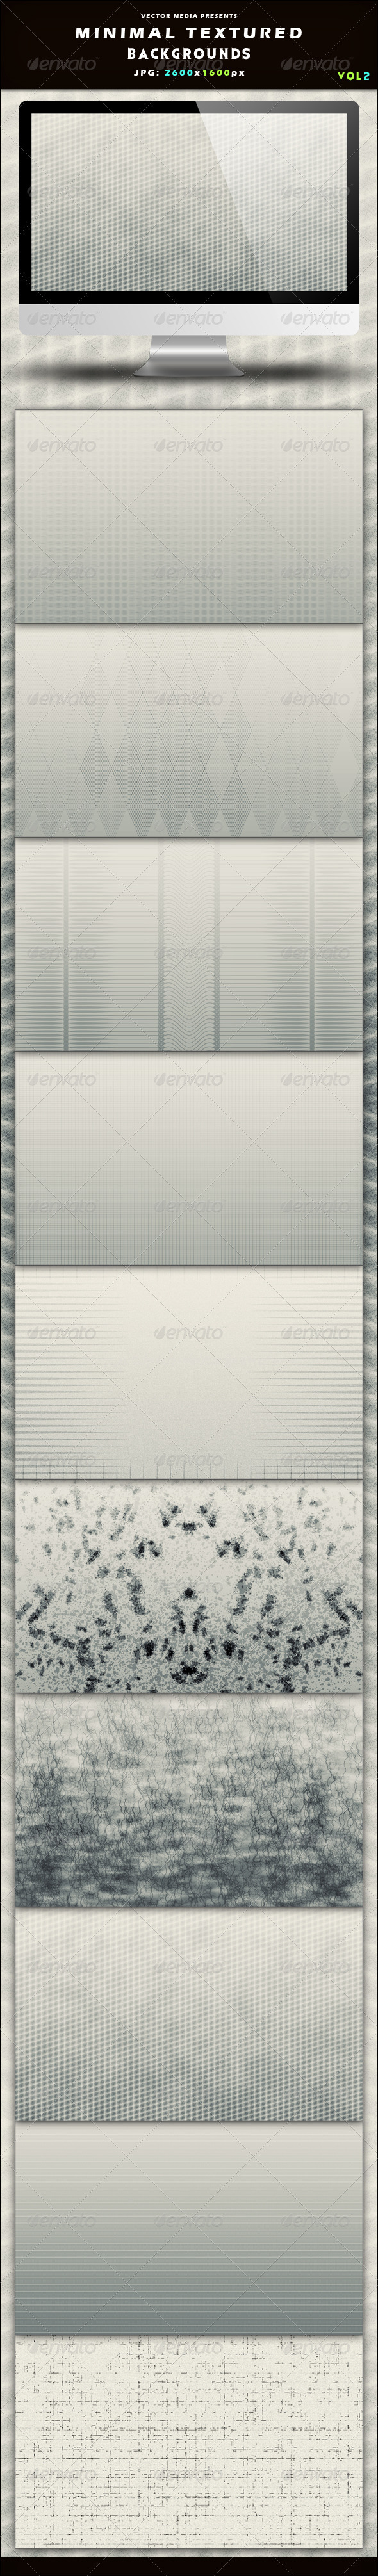 Minimal Textured Backgrounds - Vol 2 - Backgrounds Graphics